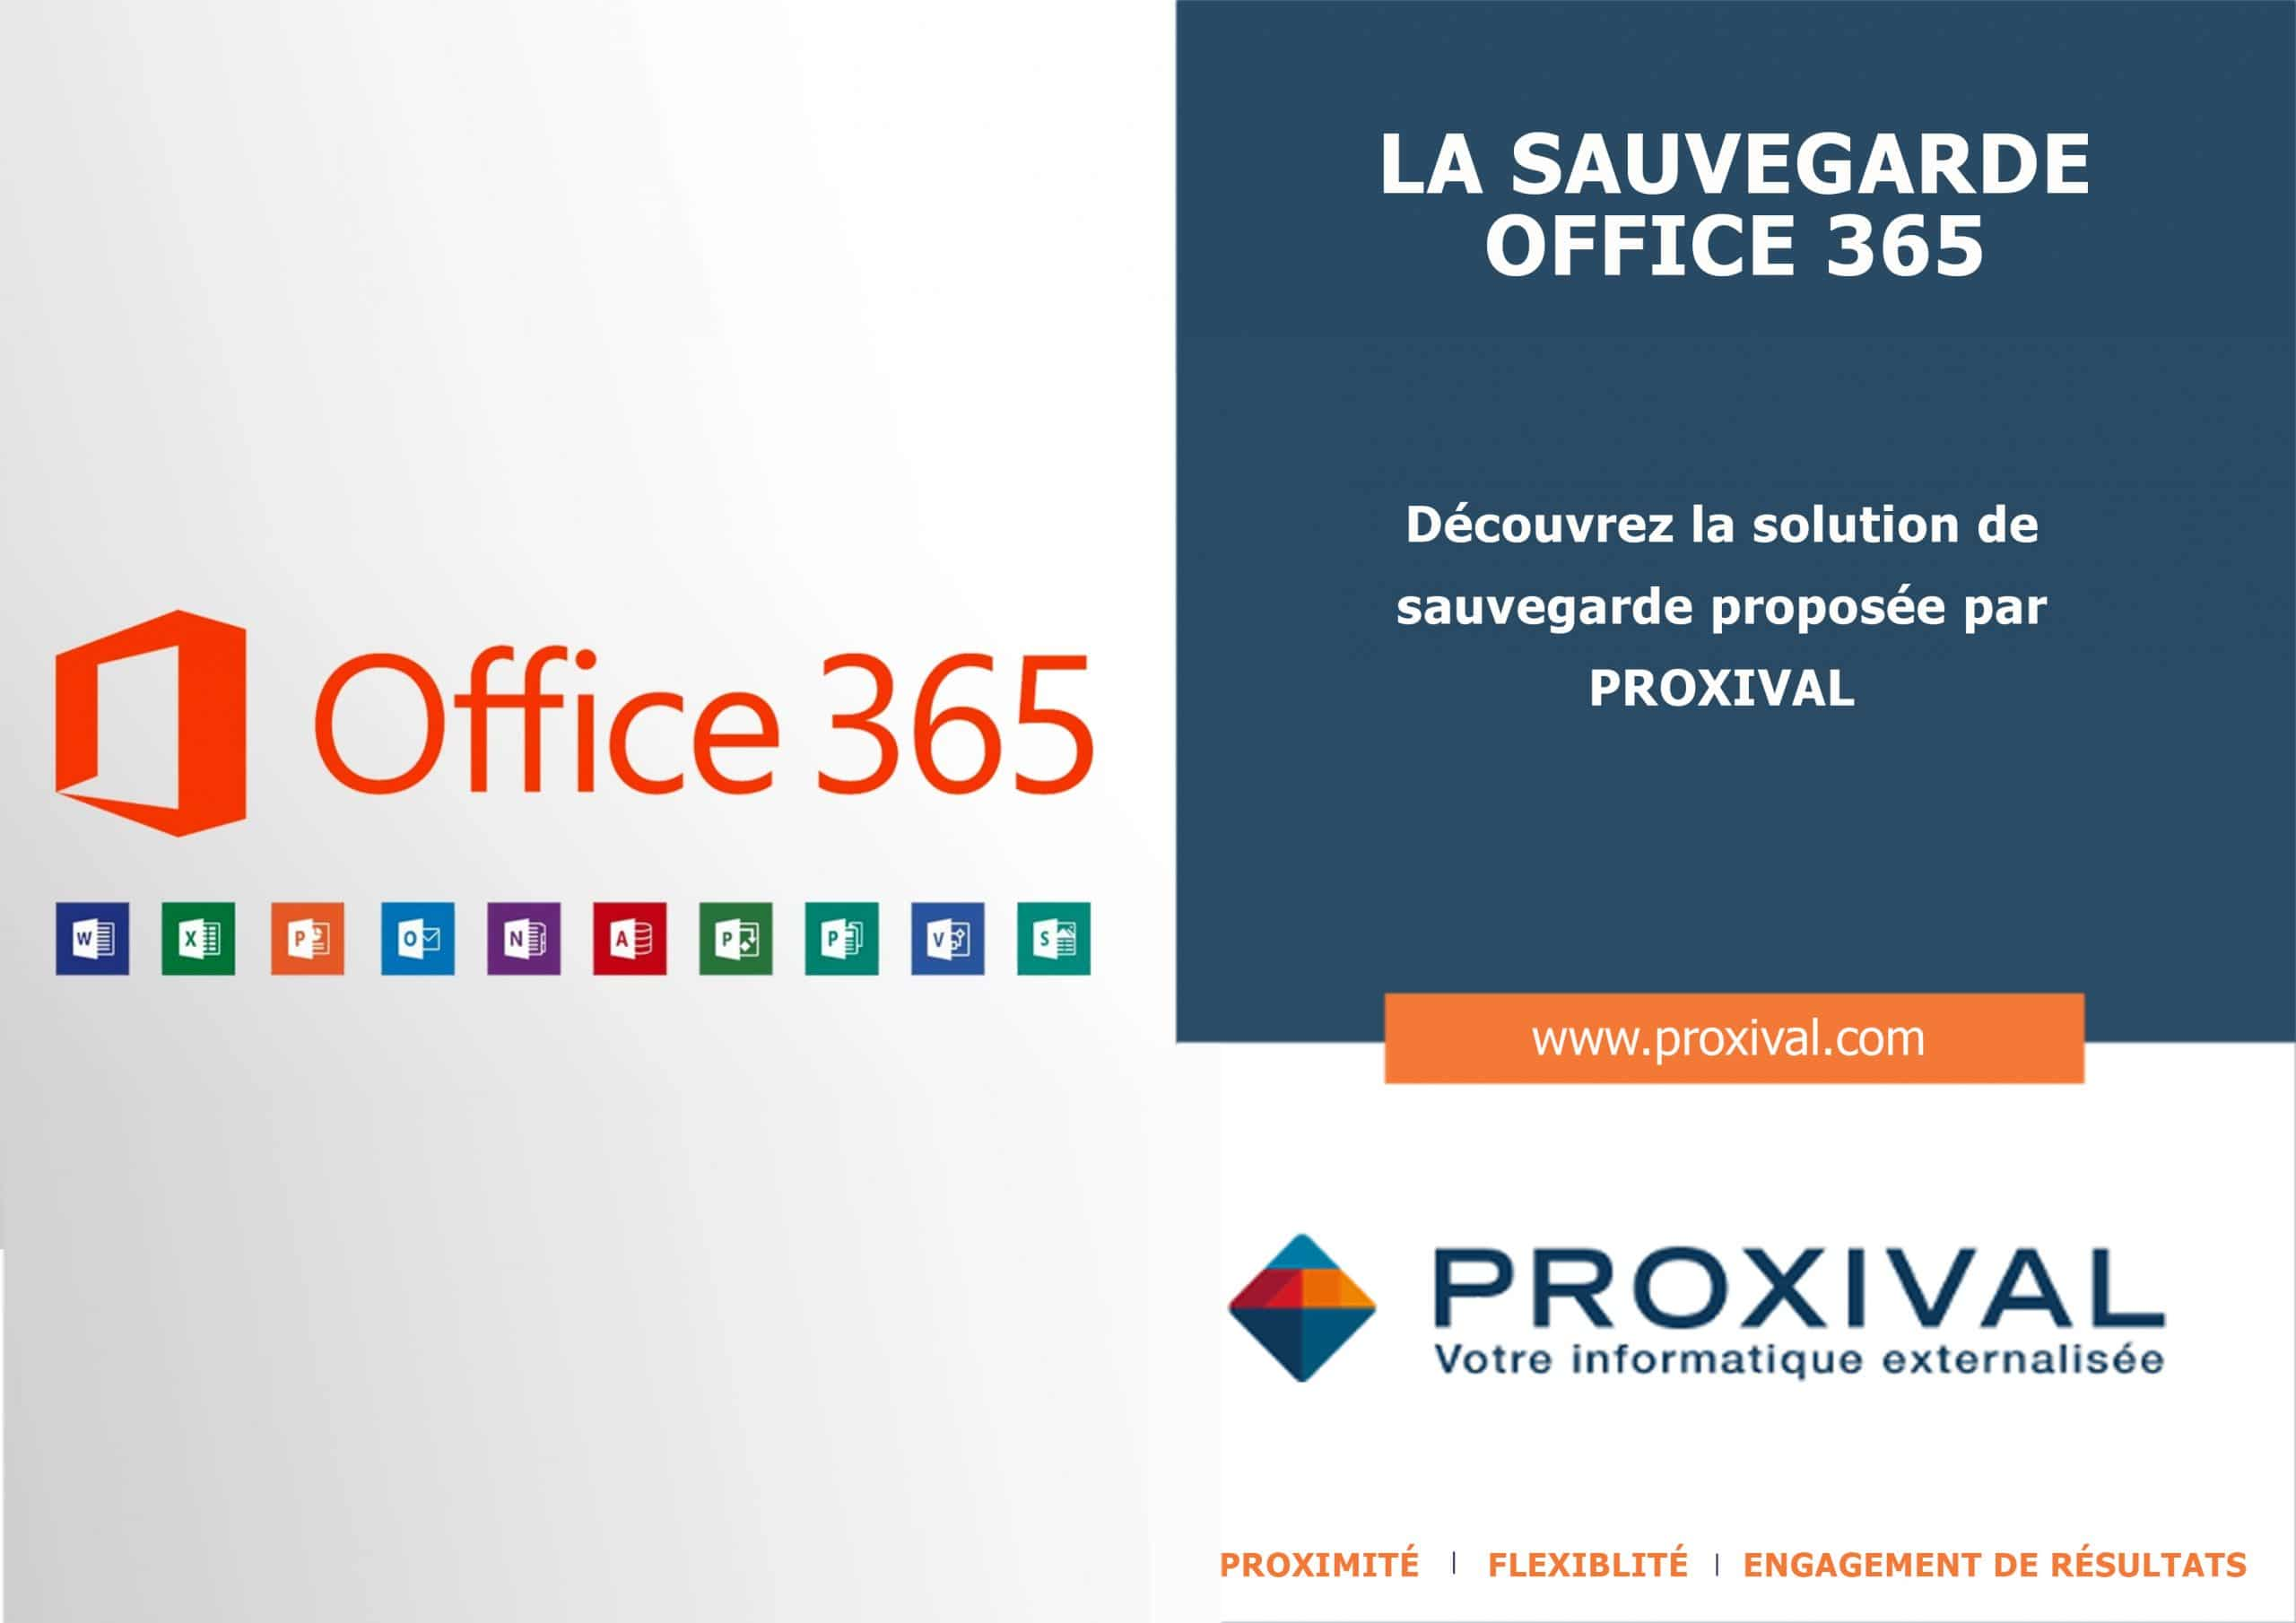 Sauvegarde Office 365